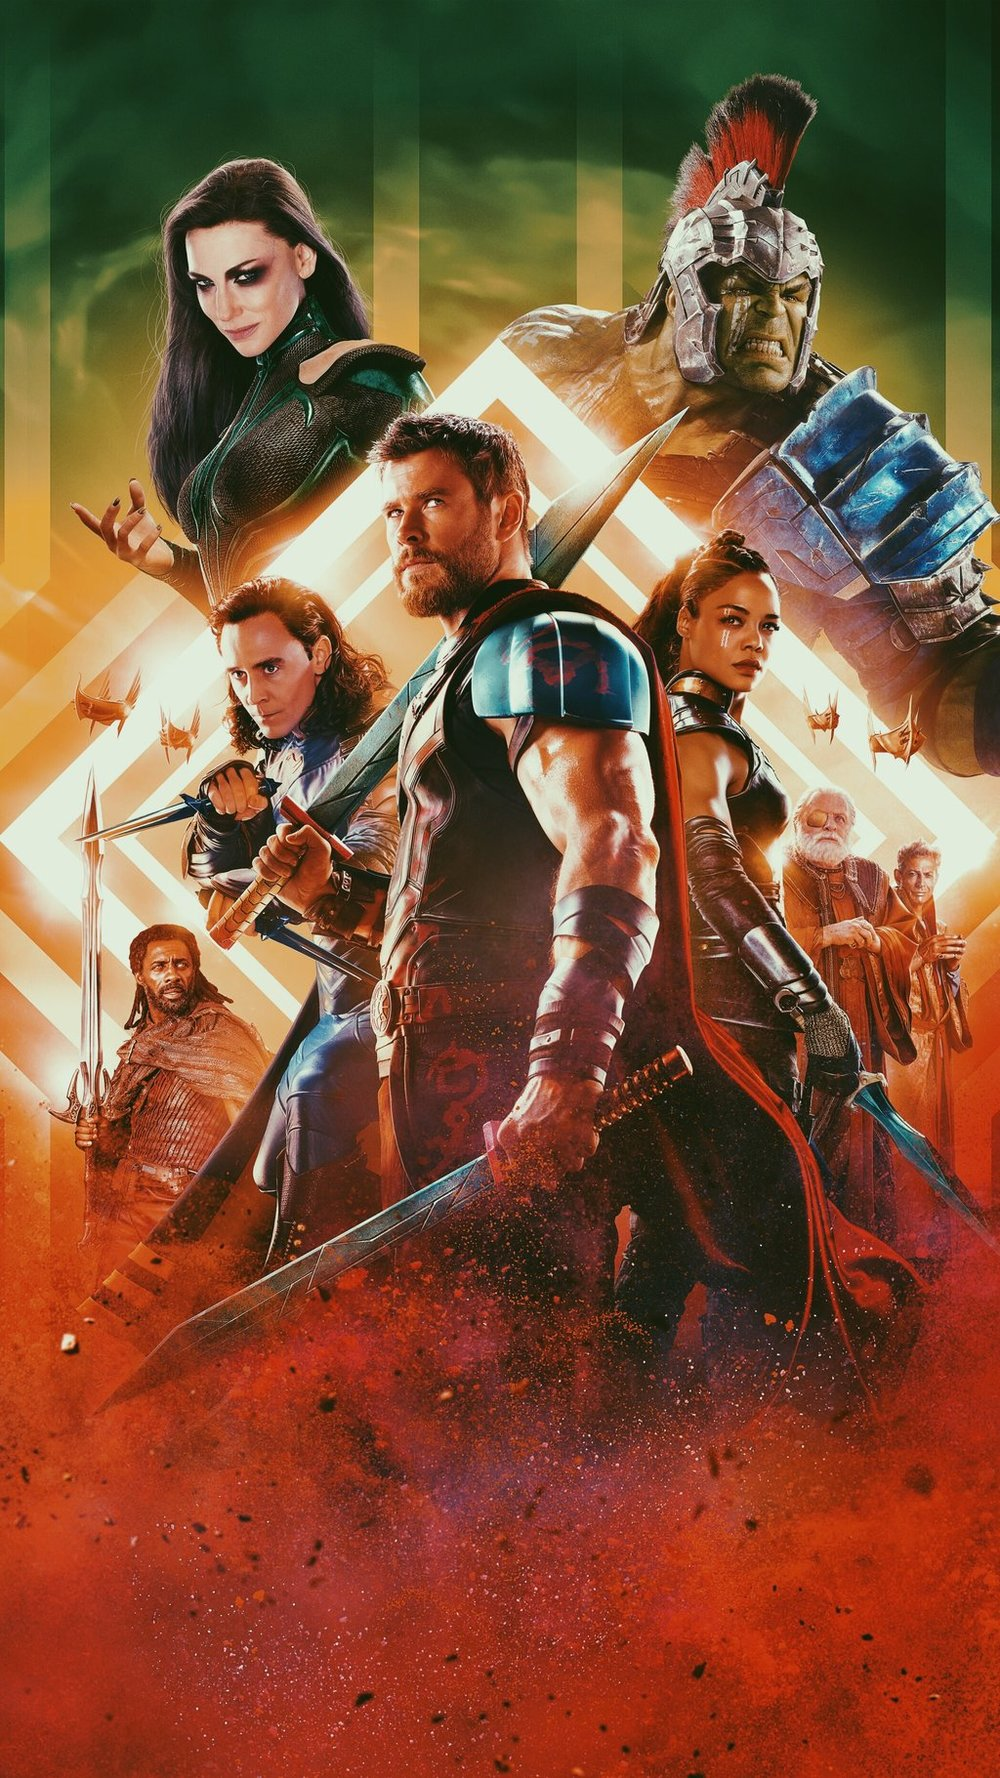 Thor: Ragnarok (2017) - Taika Waititi - When it comes to forgettable Marvel movies Thor tops the list. There have been two Thor movies and I've seen them both. I watched them, shrugged and moved on. If you asked me to tell you what happened in those two movies, I would say I'm pretty sure Natalie Portman was in them. Then if you told me there would be a new Thor movie and Natalie Portman won't be in it, my interest level would probably drop to cat caring about humans level. Uninterested. That is, until I heard the name attached. Taika Waititi.My list of favorite things from New Zealand isn't very long, but at the top of that list is the accent and Taika Waititi (If Thor was your first venture into Waititerritory, then go educate yourself). I have yet to have so much faith in a Marvel movie and the fact that it was a Thor movie speaks volumes. So when I finally got around to seeing it, I'm glad I got to say the thing I love to say to myself,